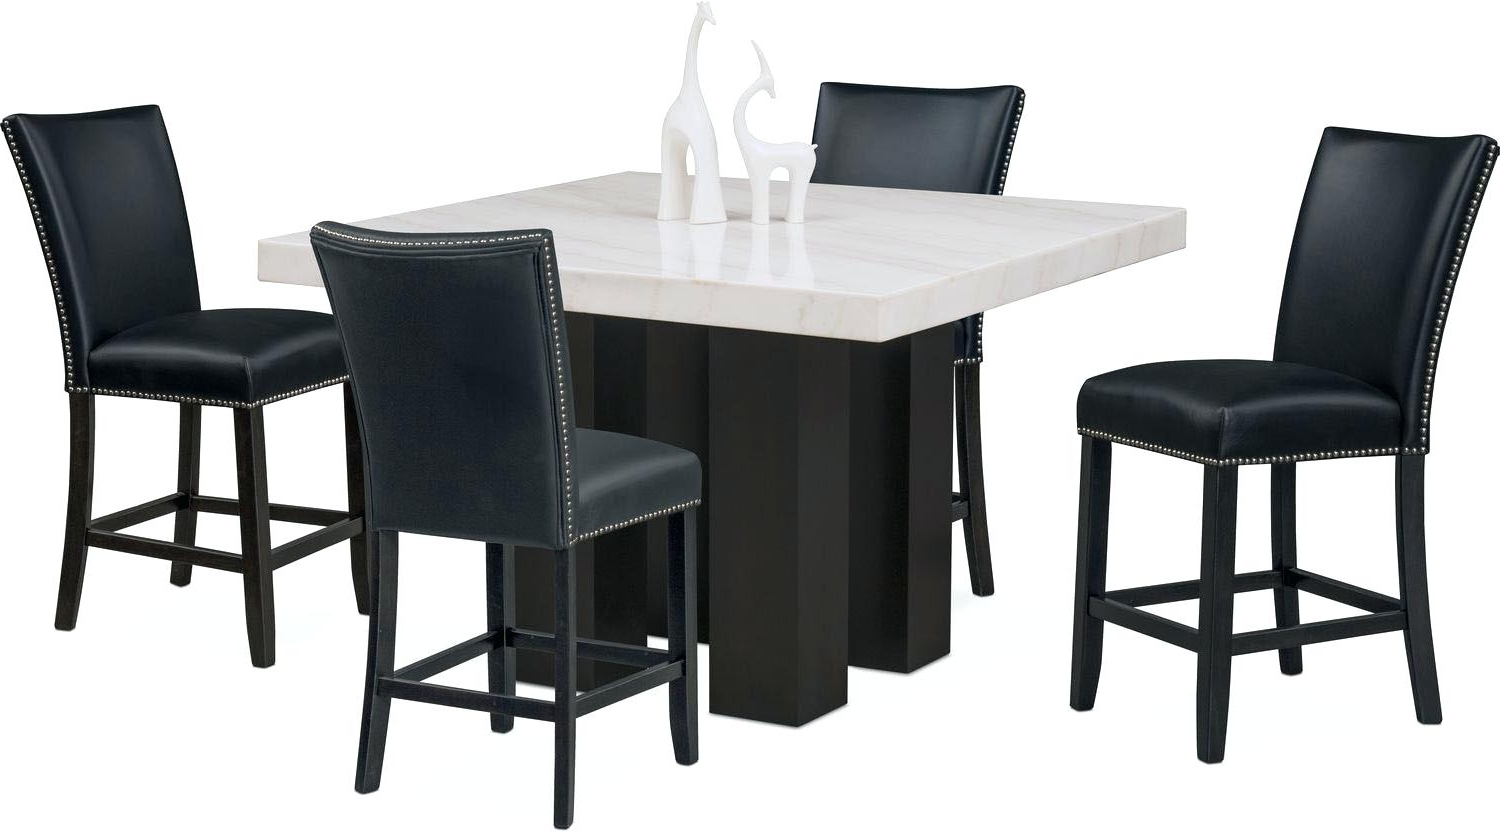 2018 Dining Table Stools Dining Table Dining Bar Table Set – Savagisms within Dining Tables With Attached Stools